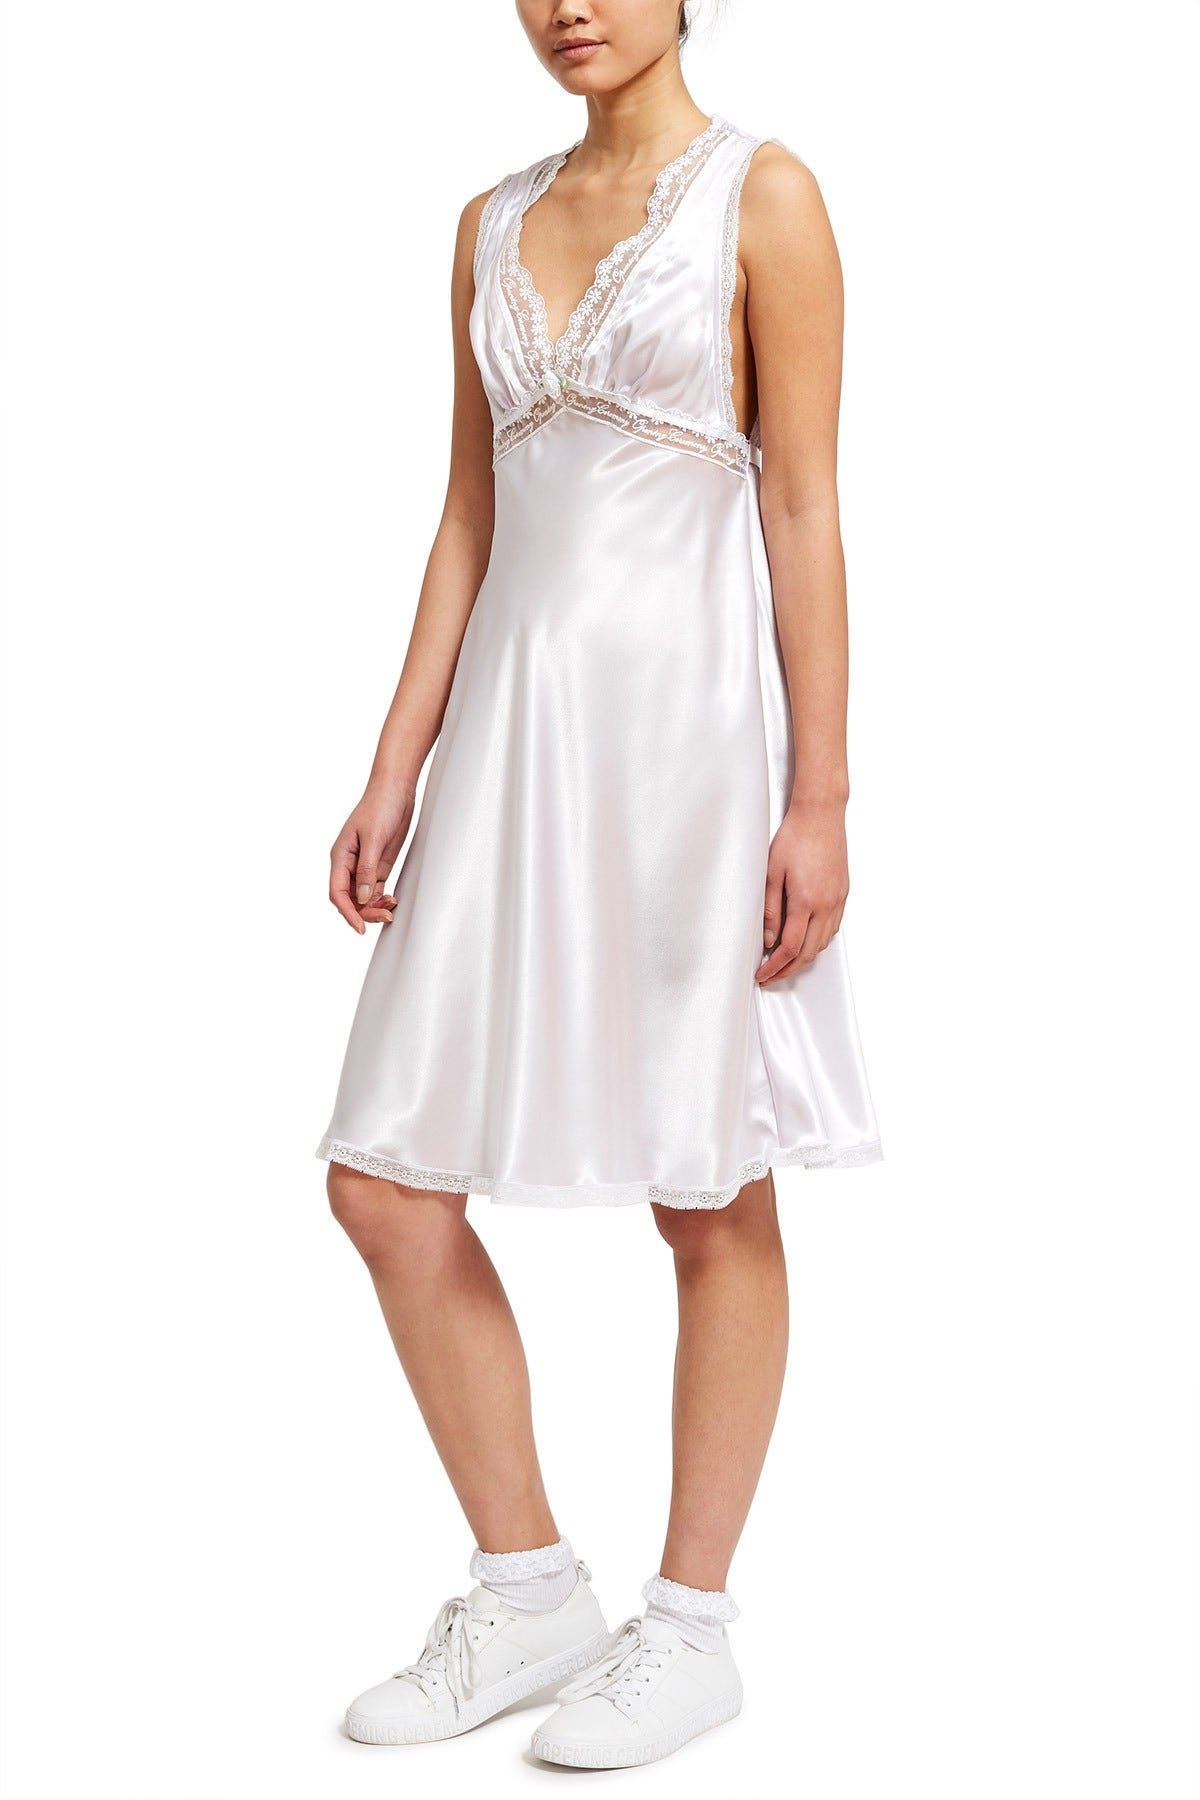 Priamo for Opening Ceremony + Bias-cut Satin Short Gown